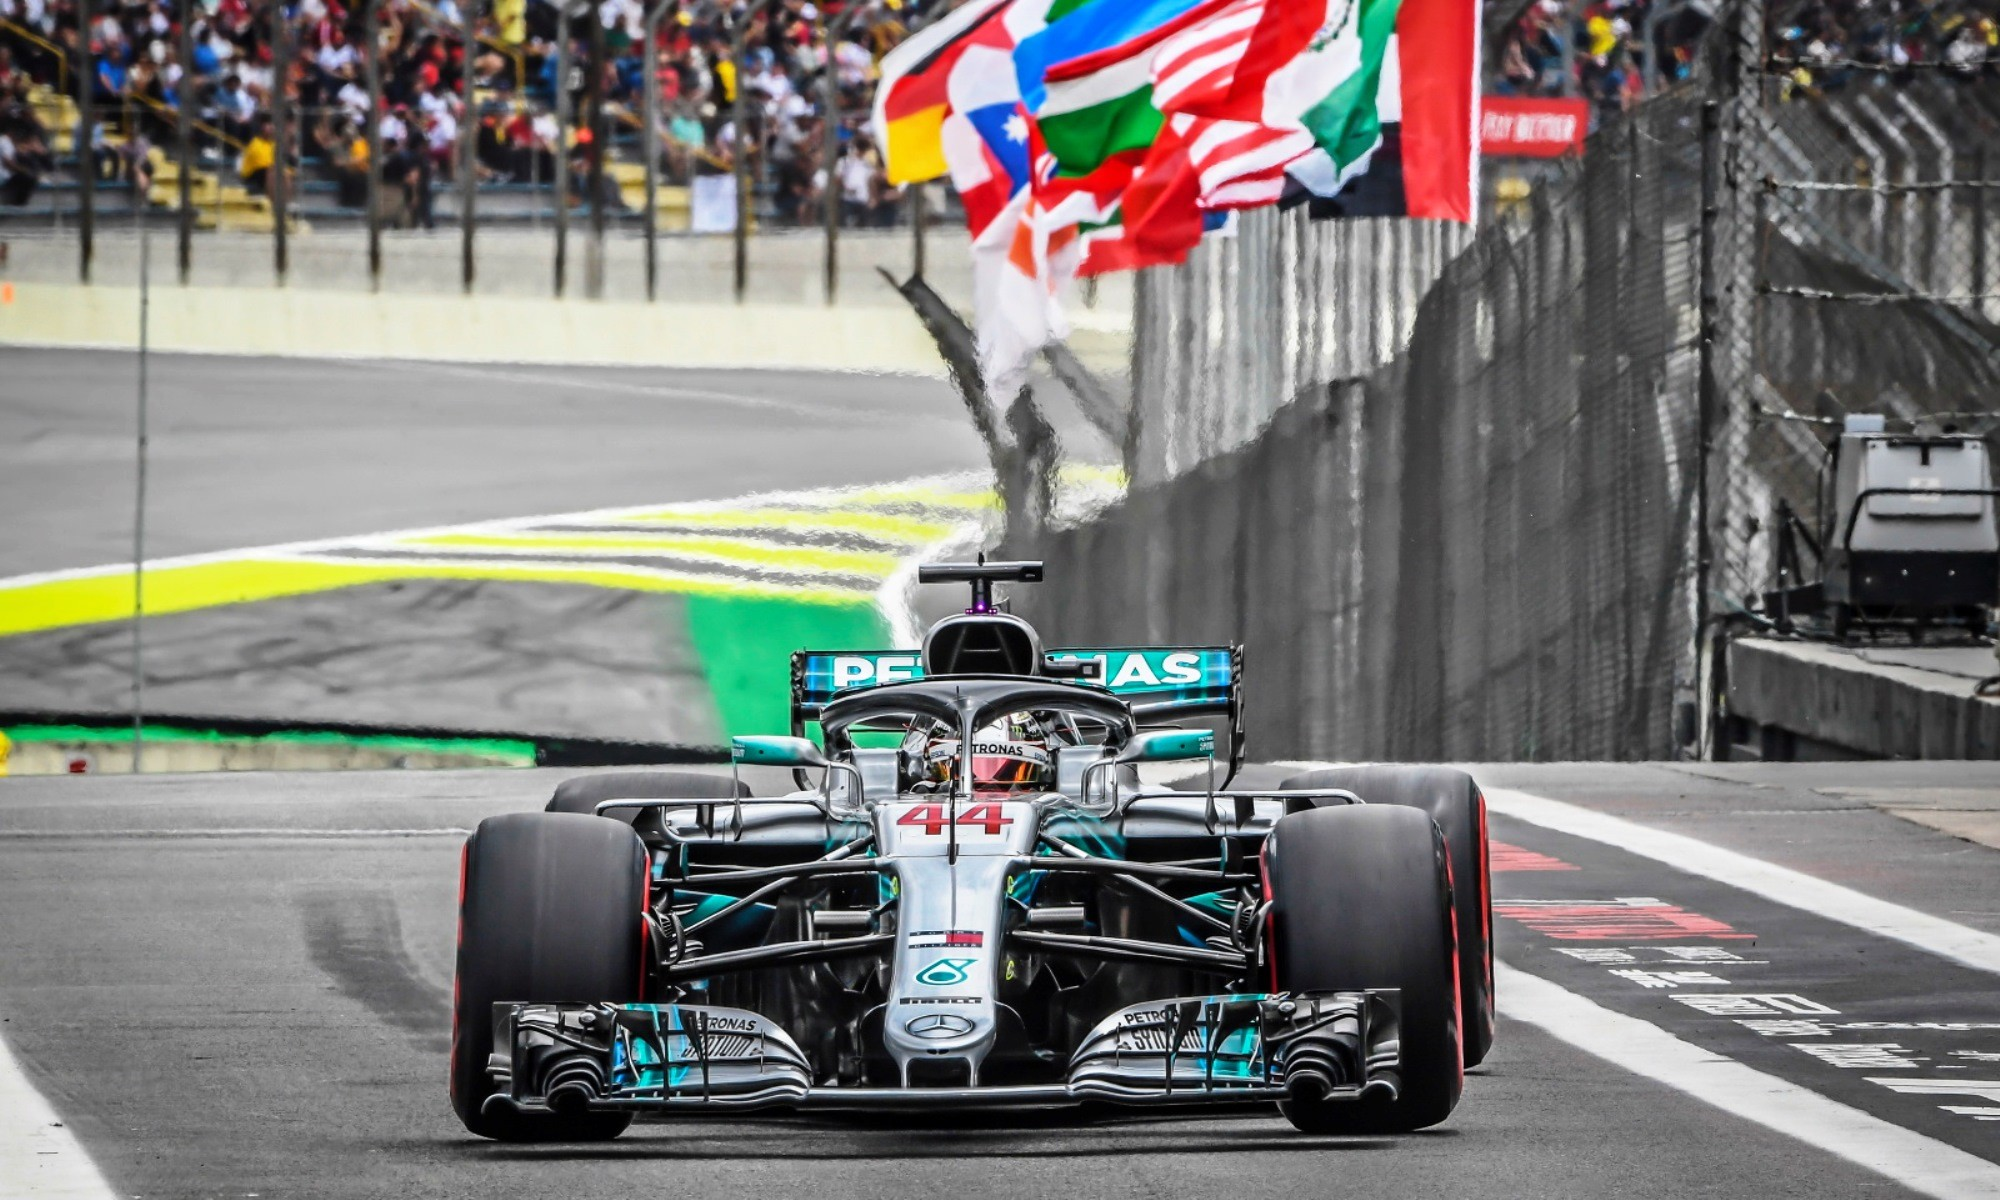 Lewis Hamilton won in Brazil